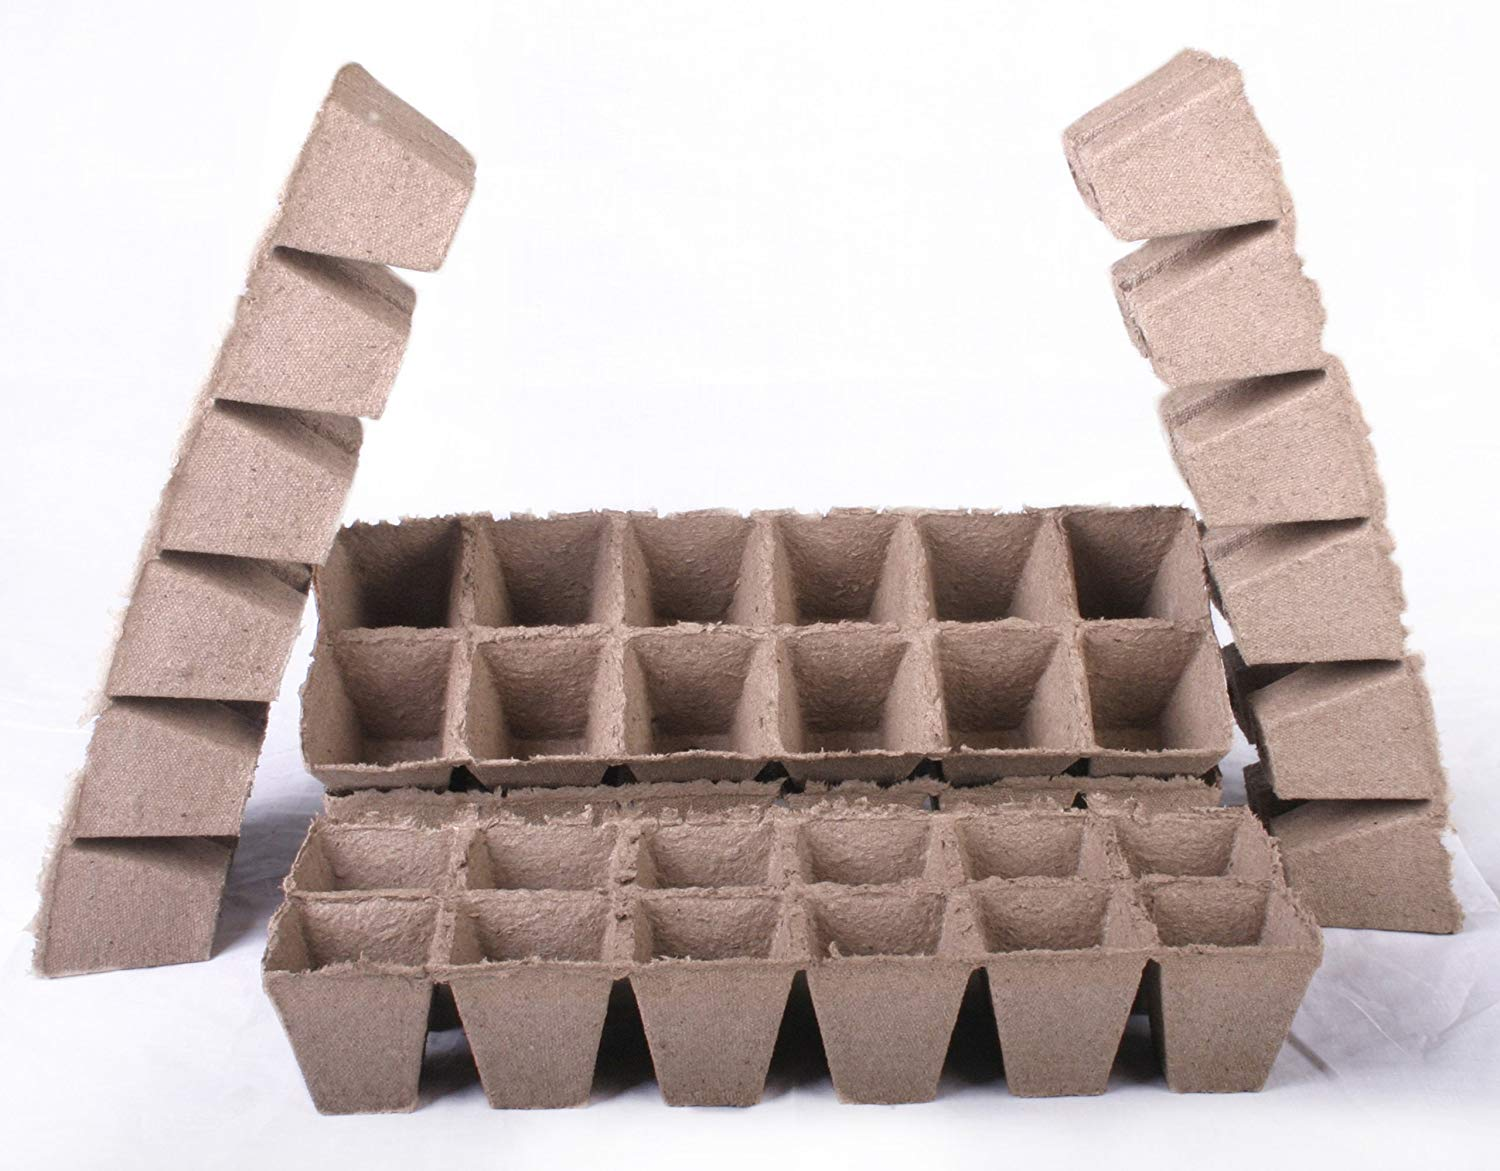 48 NEW Square Jiffy Peat Pots Size 2.25x2.25 - Strips ~ Pots Are 2.25 Inch Square At the Top and 2.25 Inch Deep.